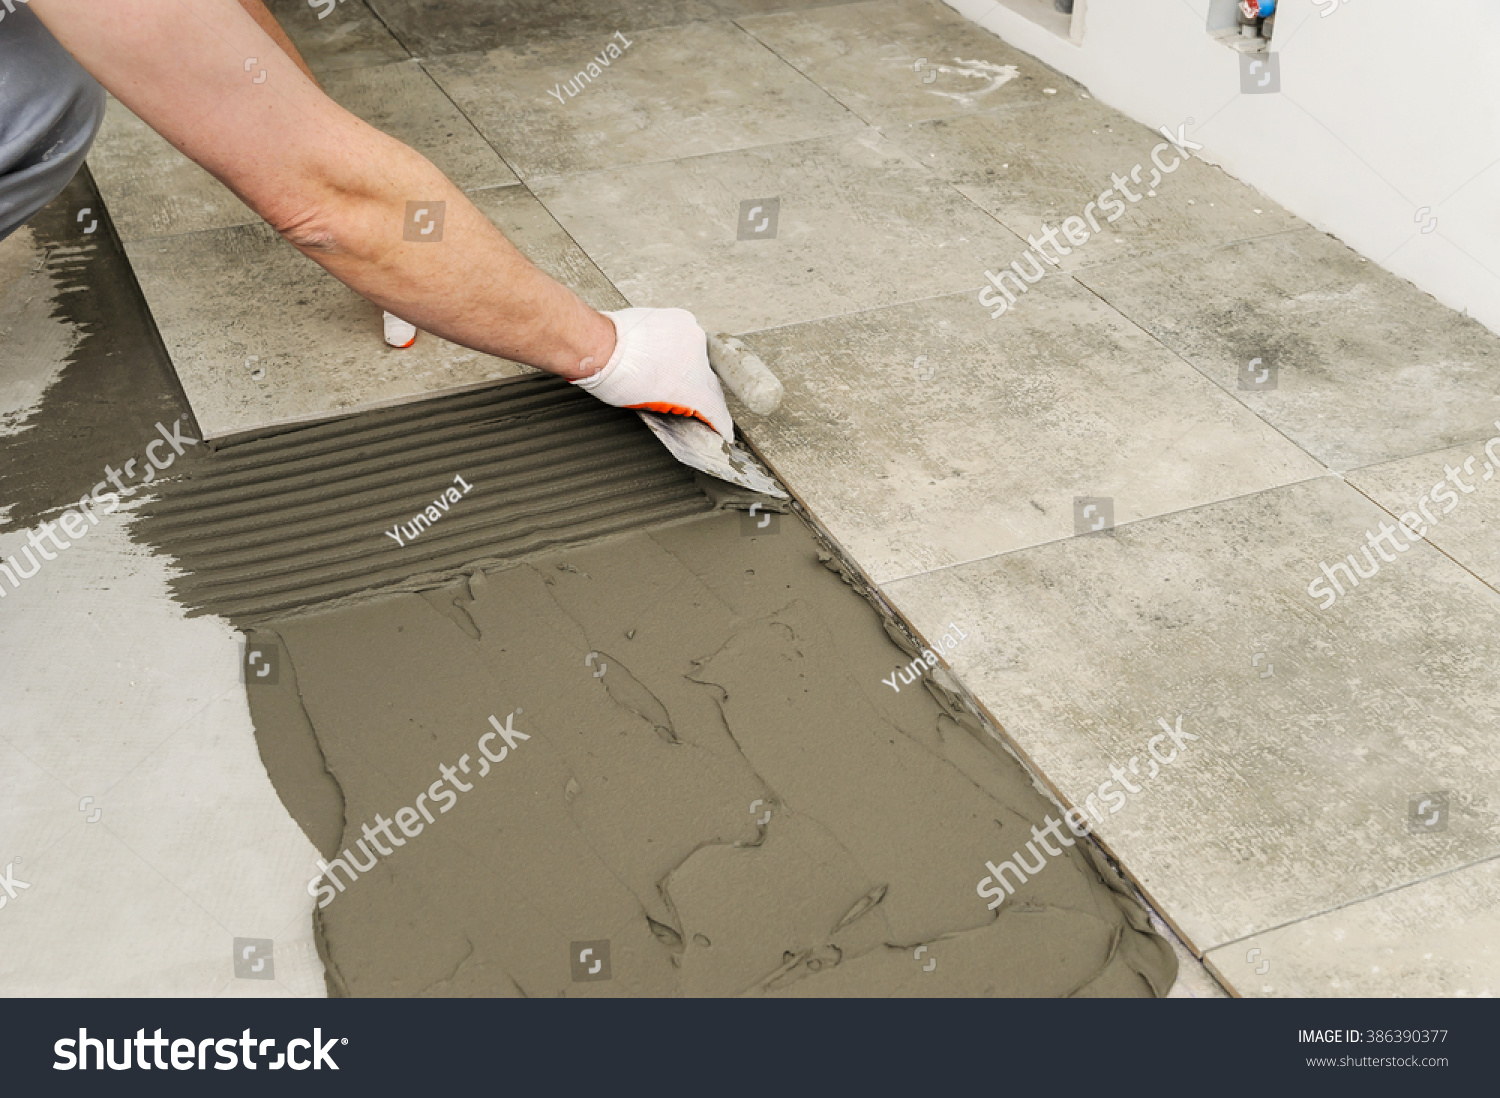 Laying ceramic tiles troweling mortar onto stock photo 386390377 laying ceramic tiles troweling mortar onto a concrete floor in preparation for laying floor tile dailygadgetfo Gallery